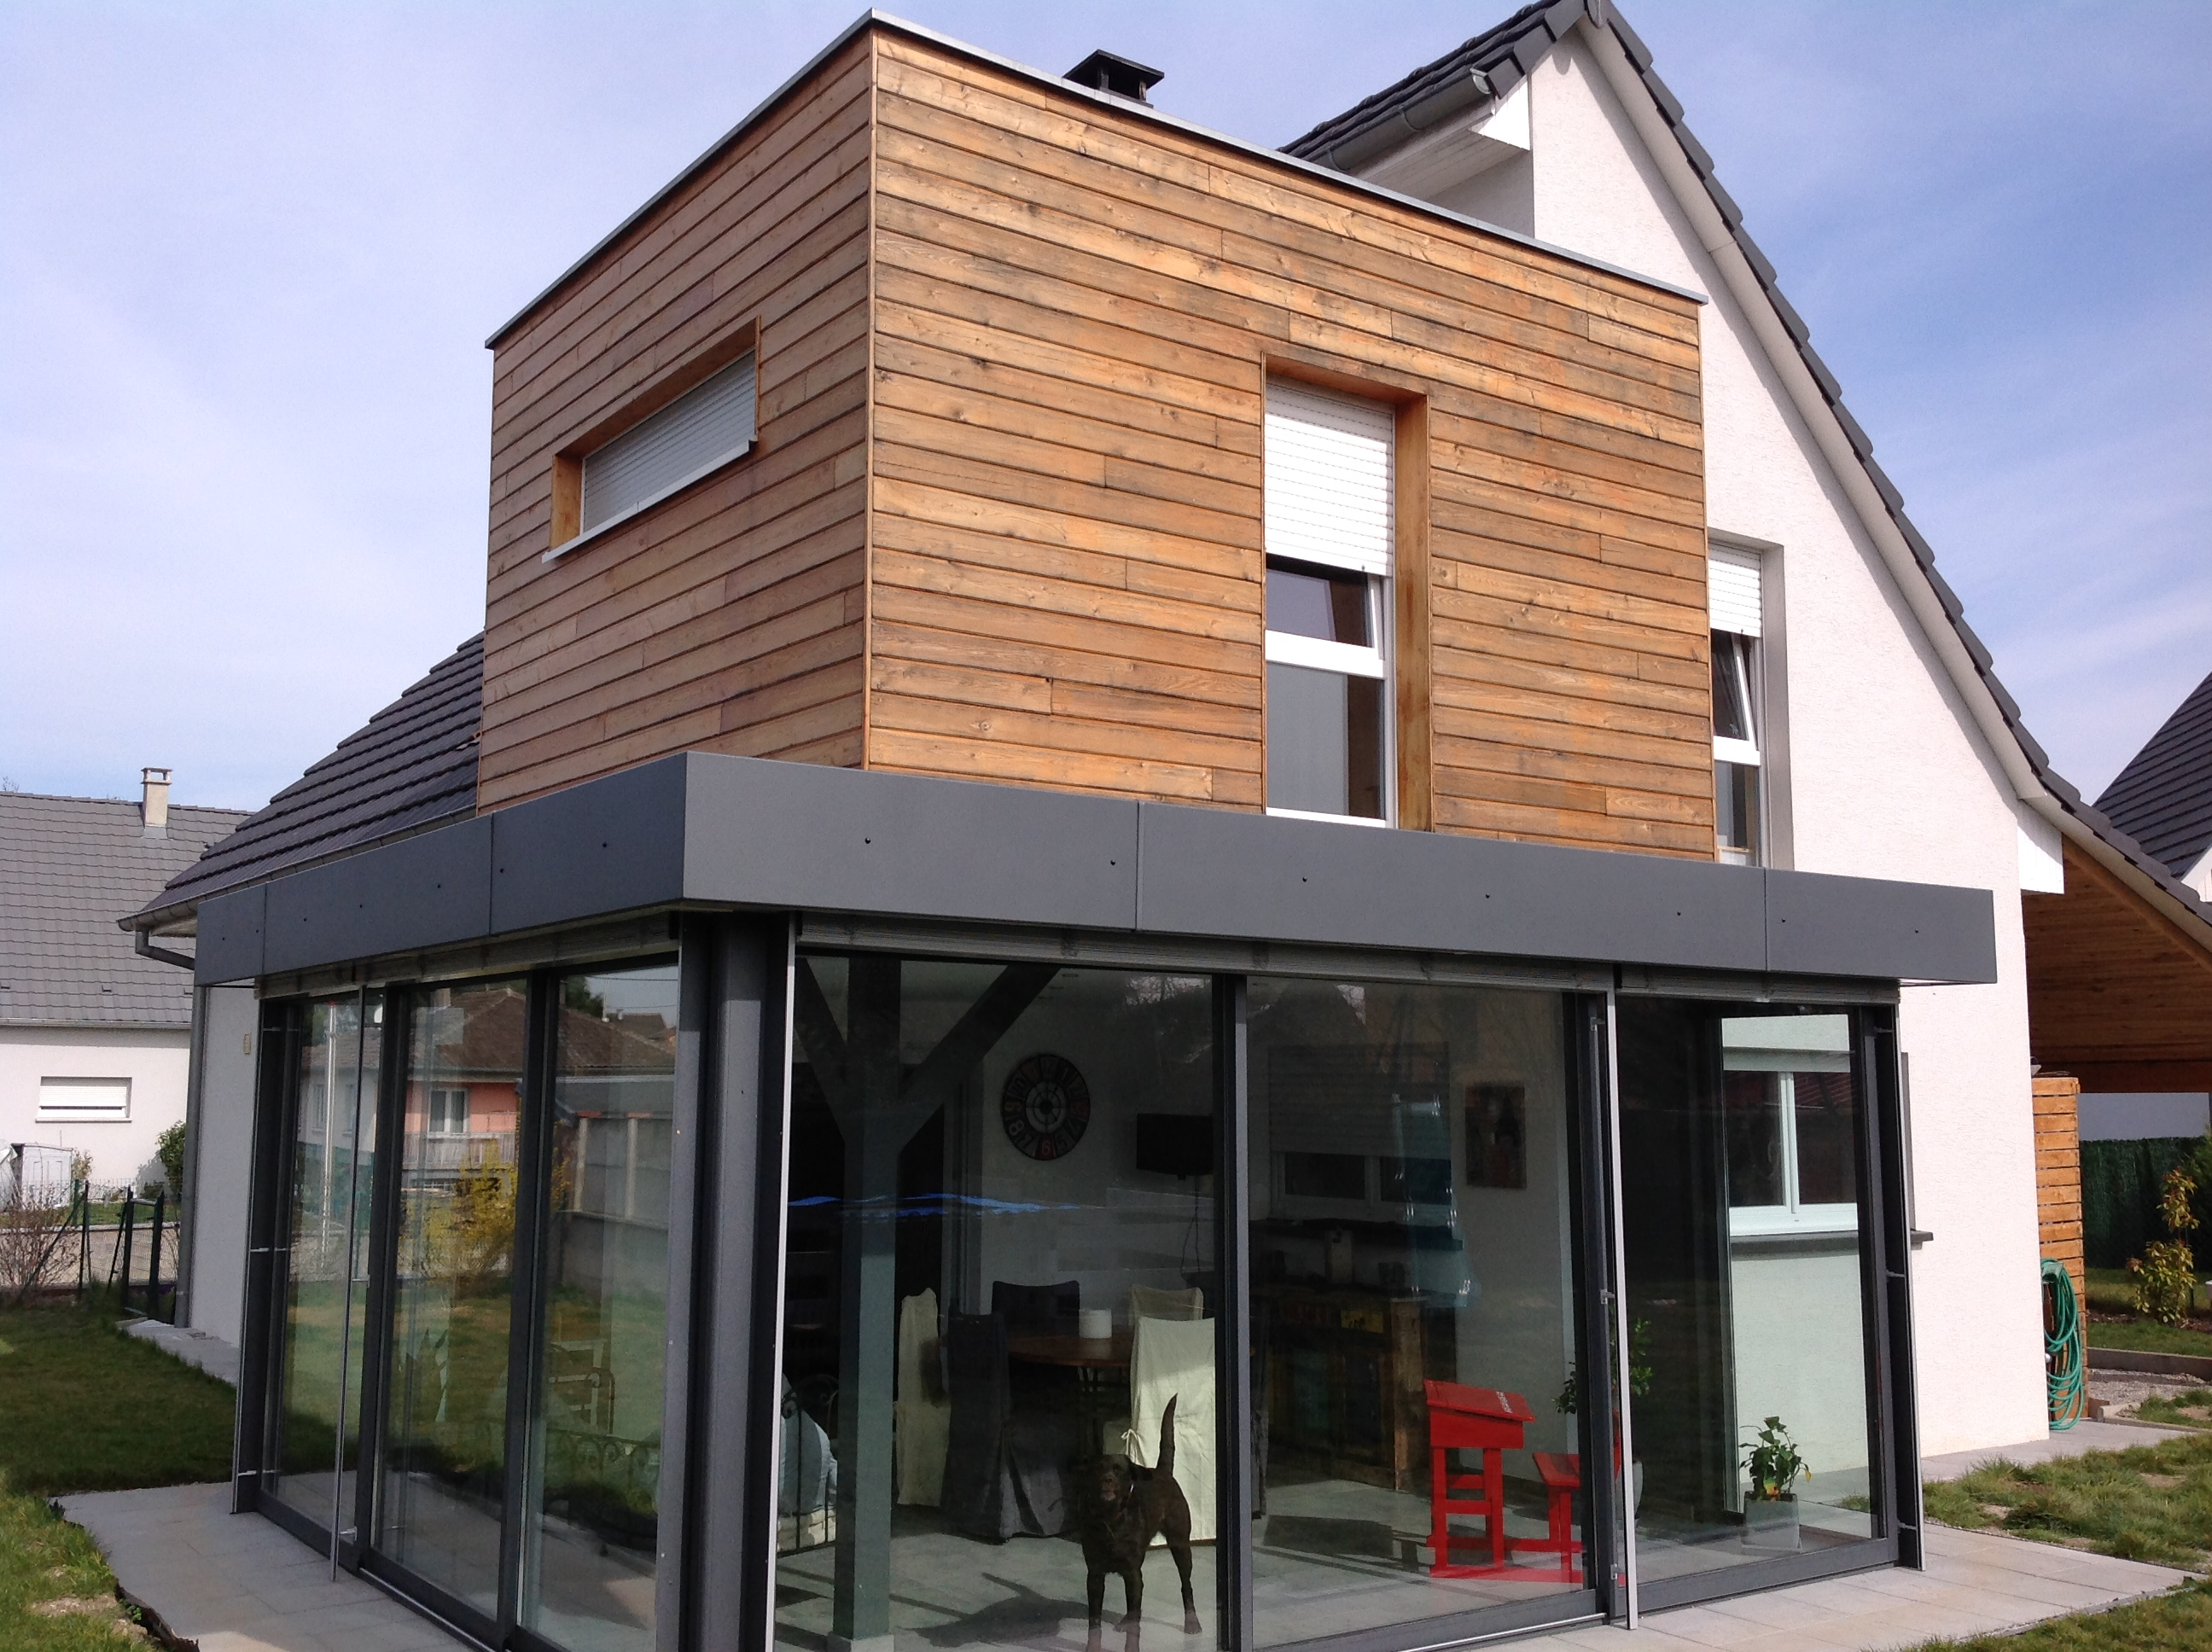 Extension de maison en tage abt construction bois for Terrasse etage maison